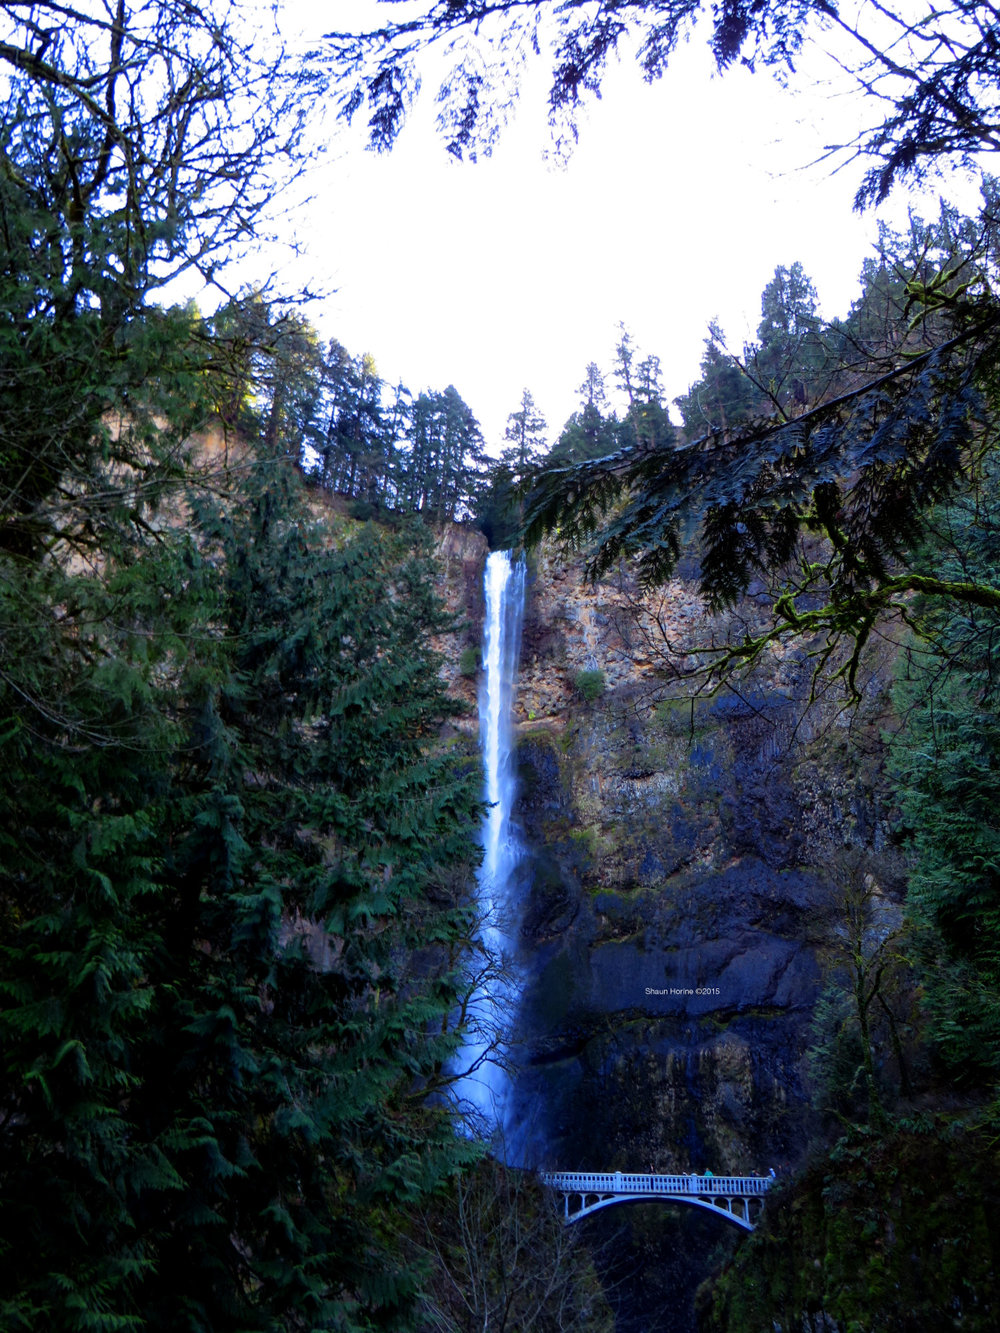 Multnomah Falls at a distance. March 1st, 2015